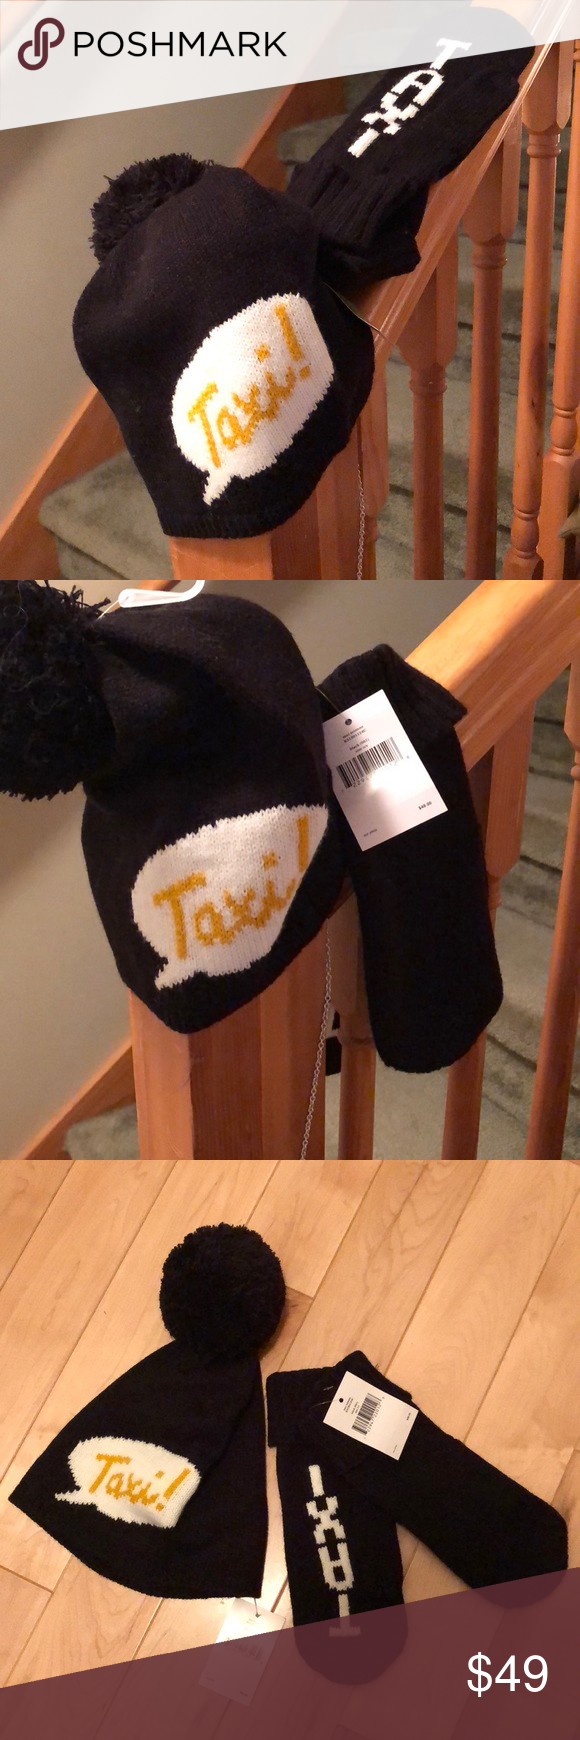 Kate Spade Taxi Knit Beanie And Mittens In 2020 Knit Beanie Kate Spade Mittens